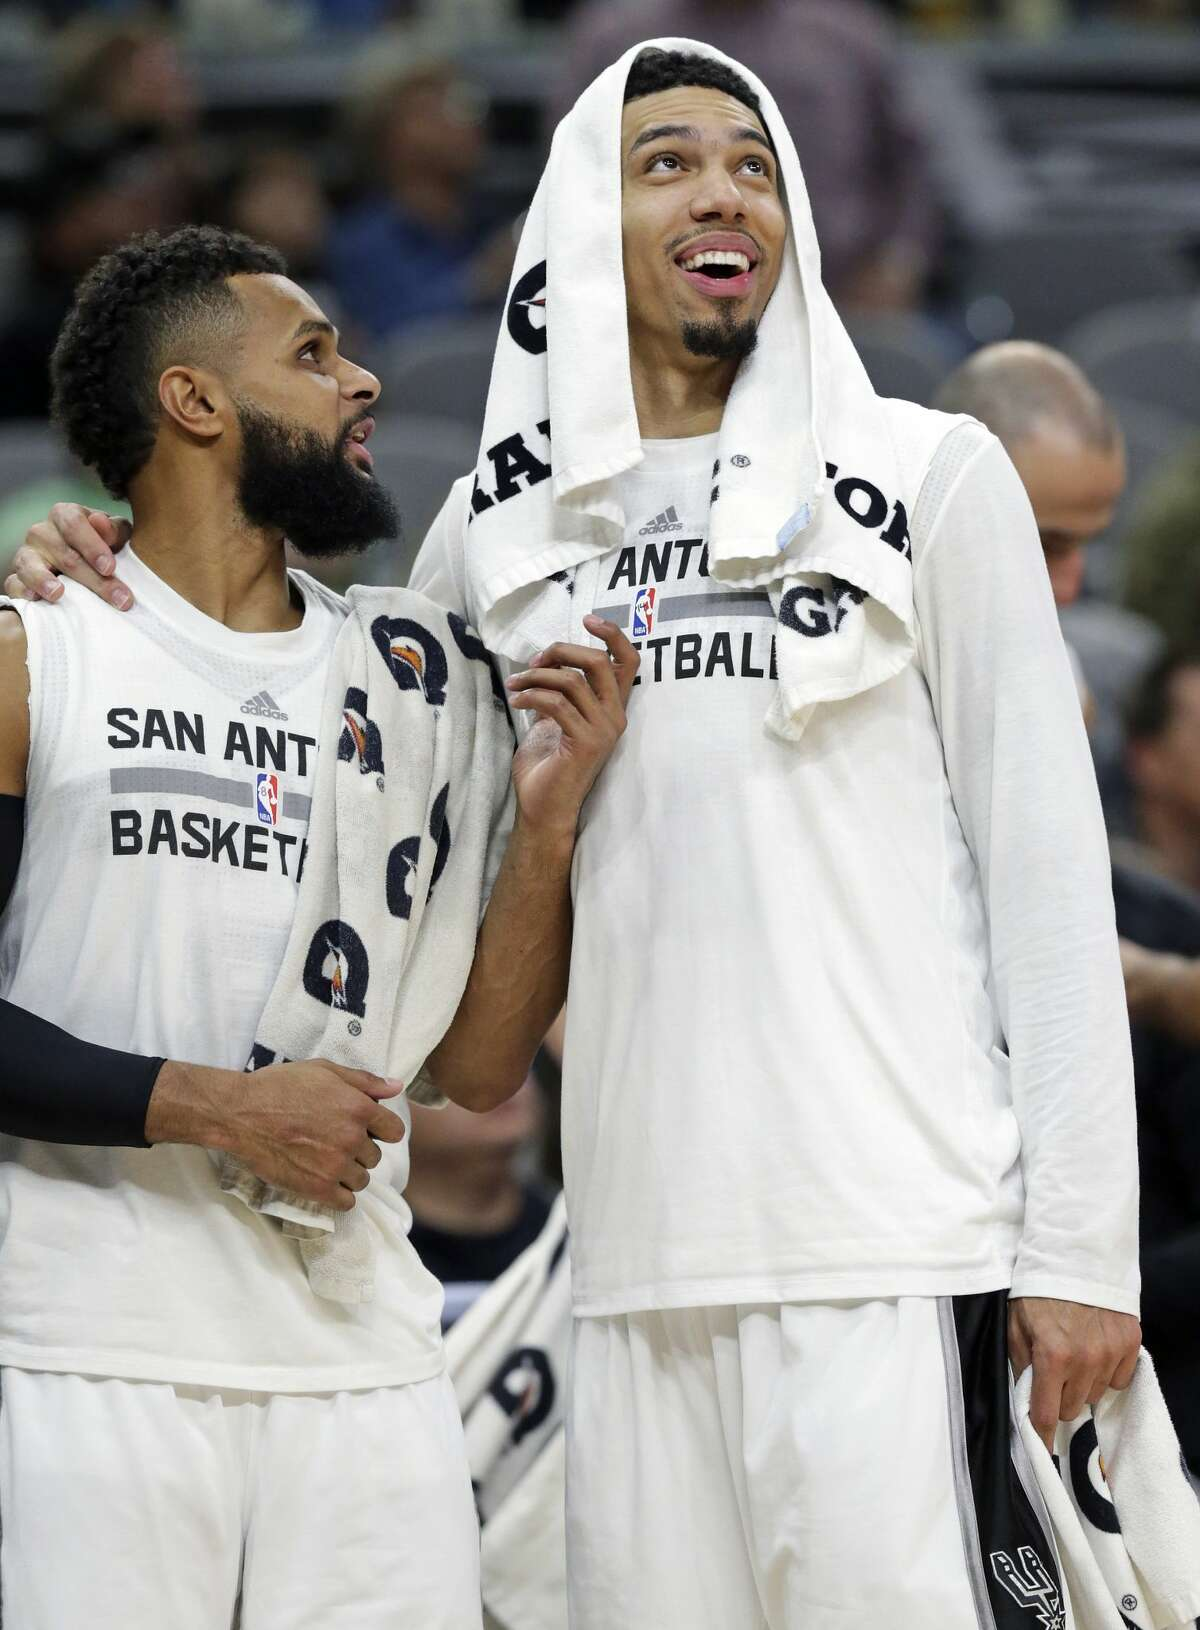 Danny Green and Patty Mills check the scoreboard as the Spurs pull off a 40 point win as the Spurs host the Lakers at the AT&T Center on January, 12, 2017.